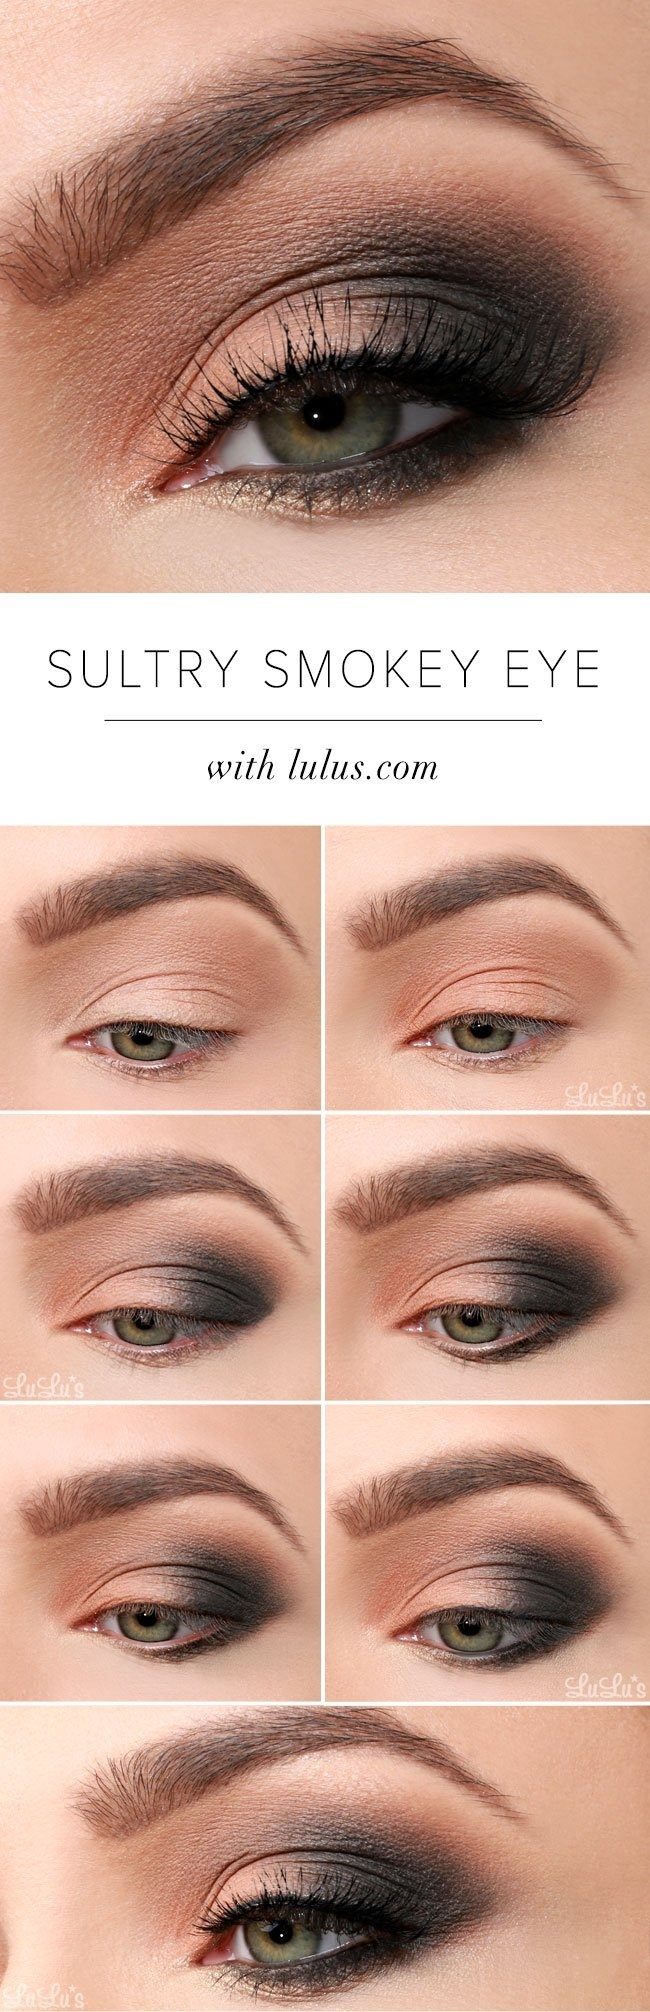 15 Smokey Eye Tutorials - Step By Step Guide To Perfect Hollywood Makeup intended for Smoky Eye Makeup Step By Step Pictures